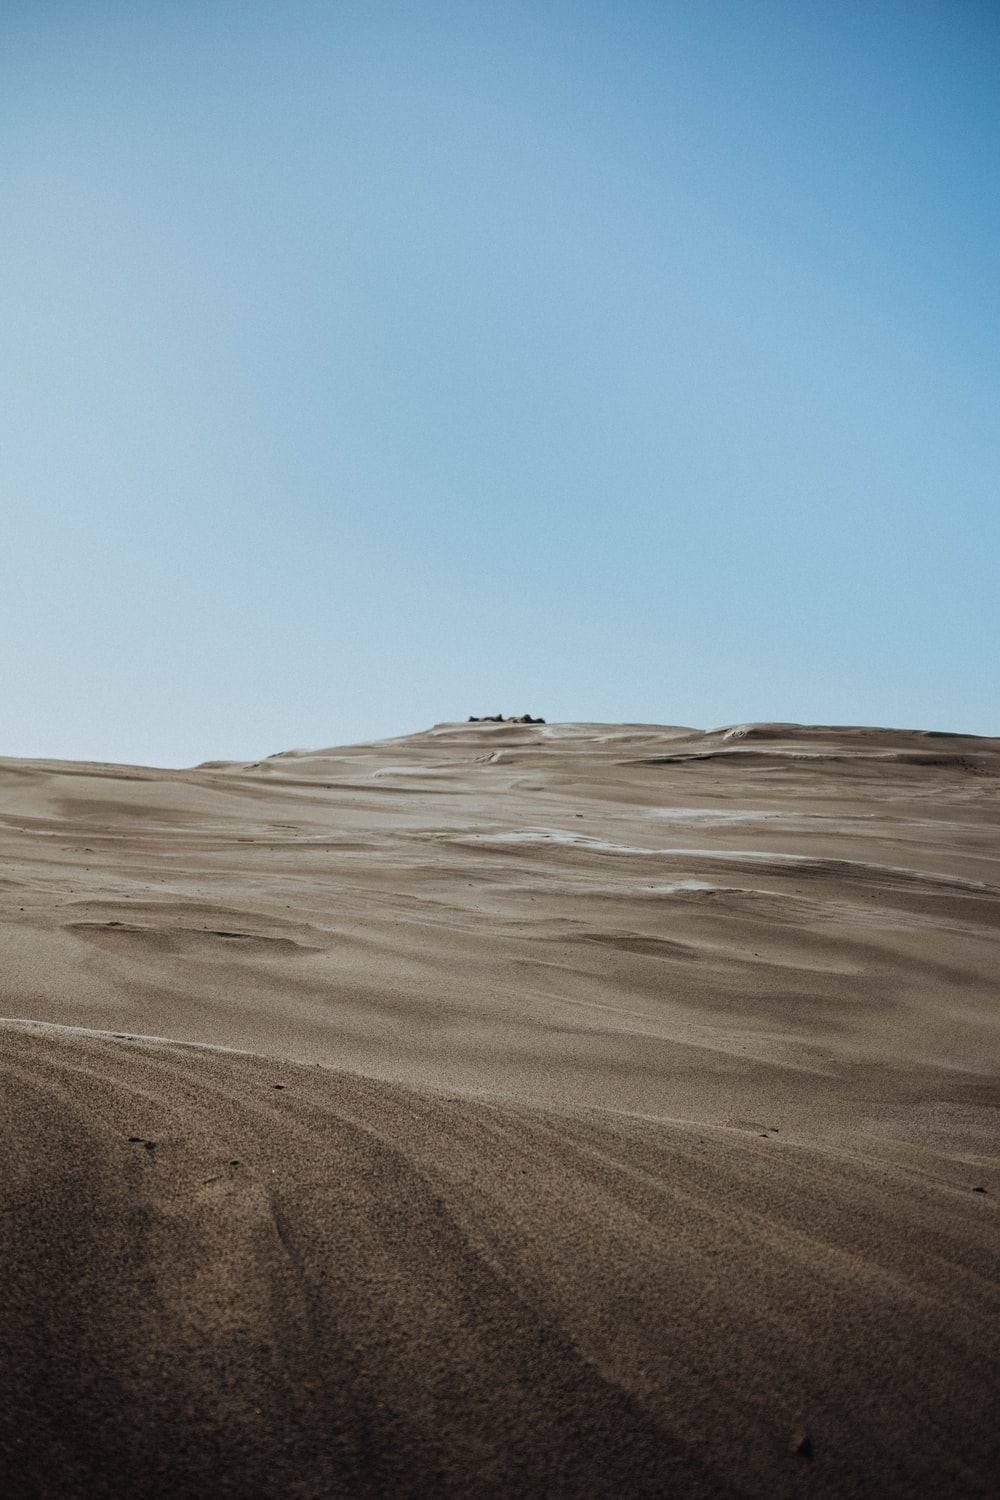 person walking on brown sand during daytime